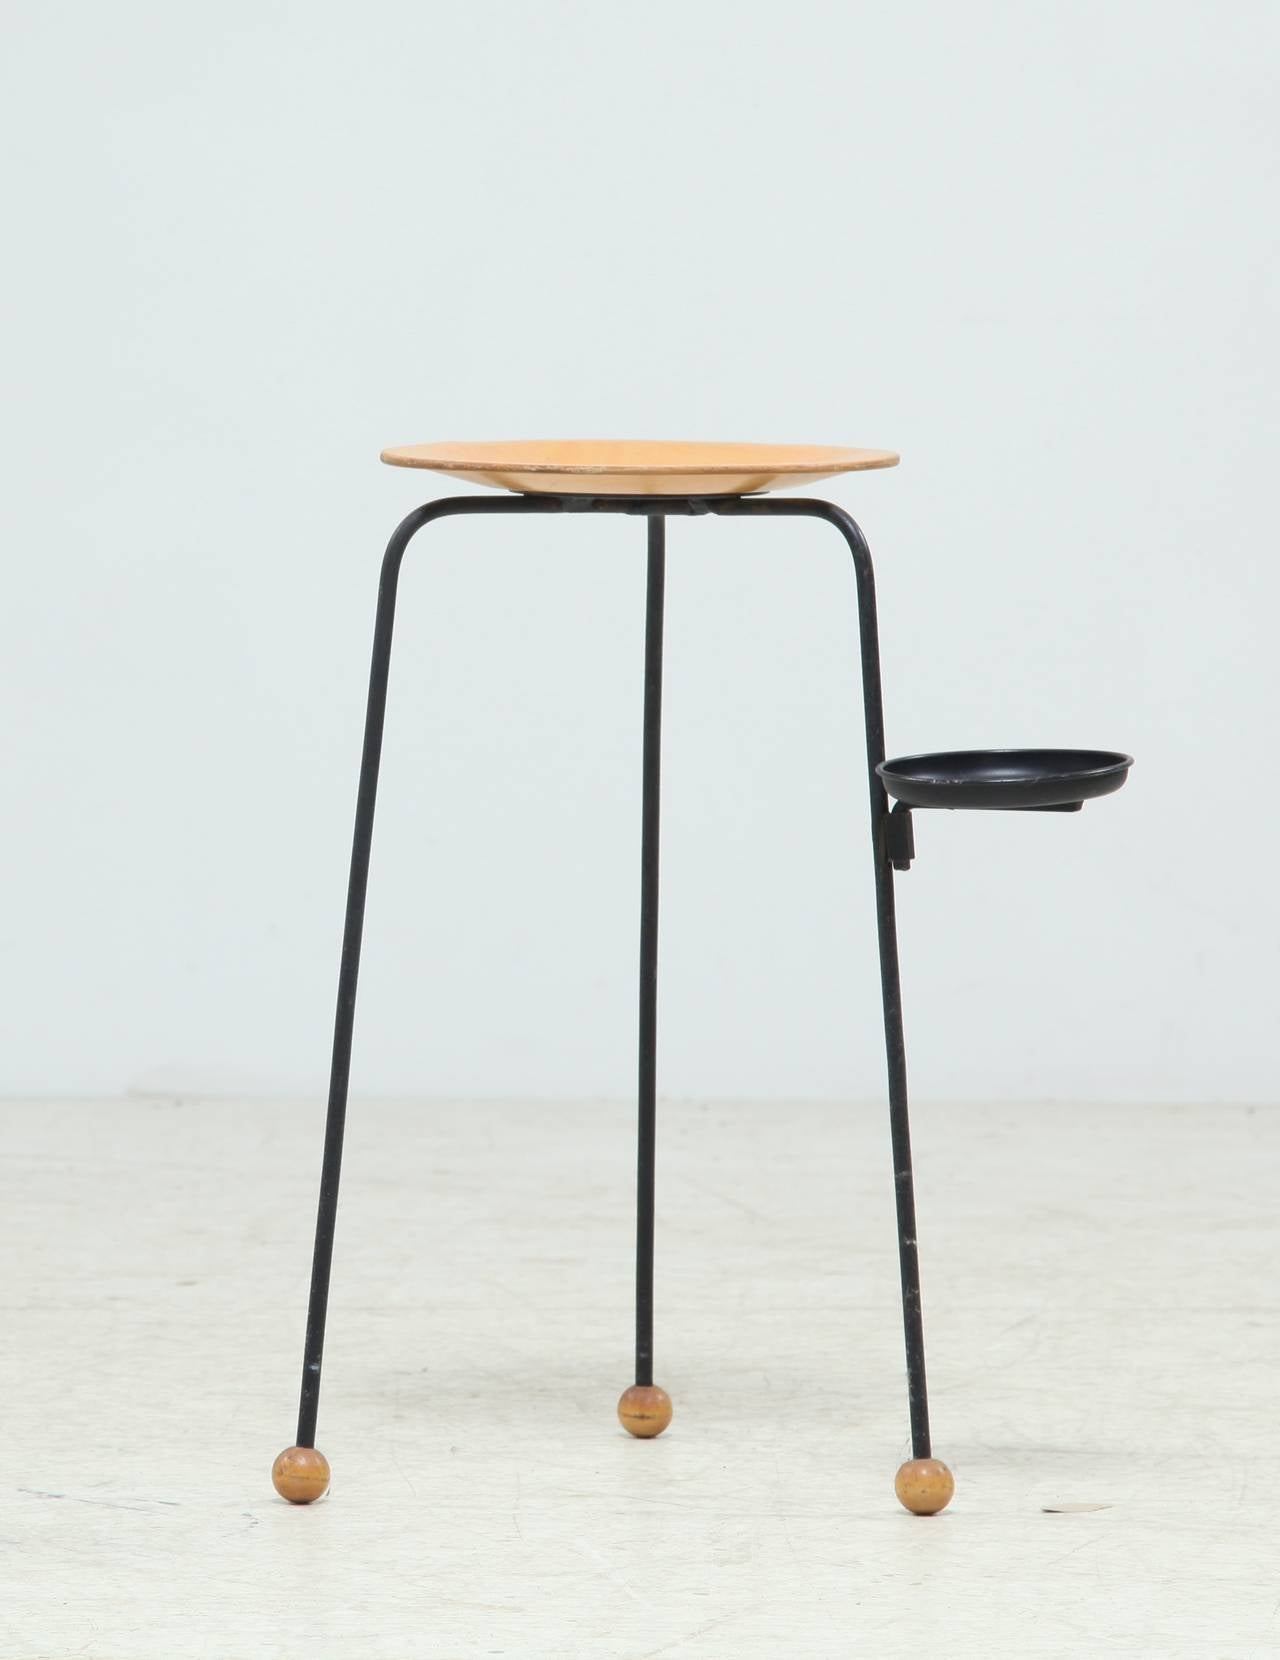 A small side table by Tony Paul from his 'Tempo' series for Woodlin-Hall. The table has thin metal legs, ball feet, a wooden top and a removable ashtray or coaster.